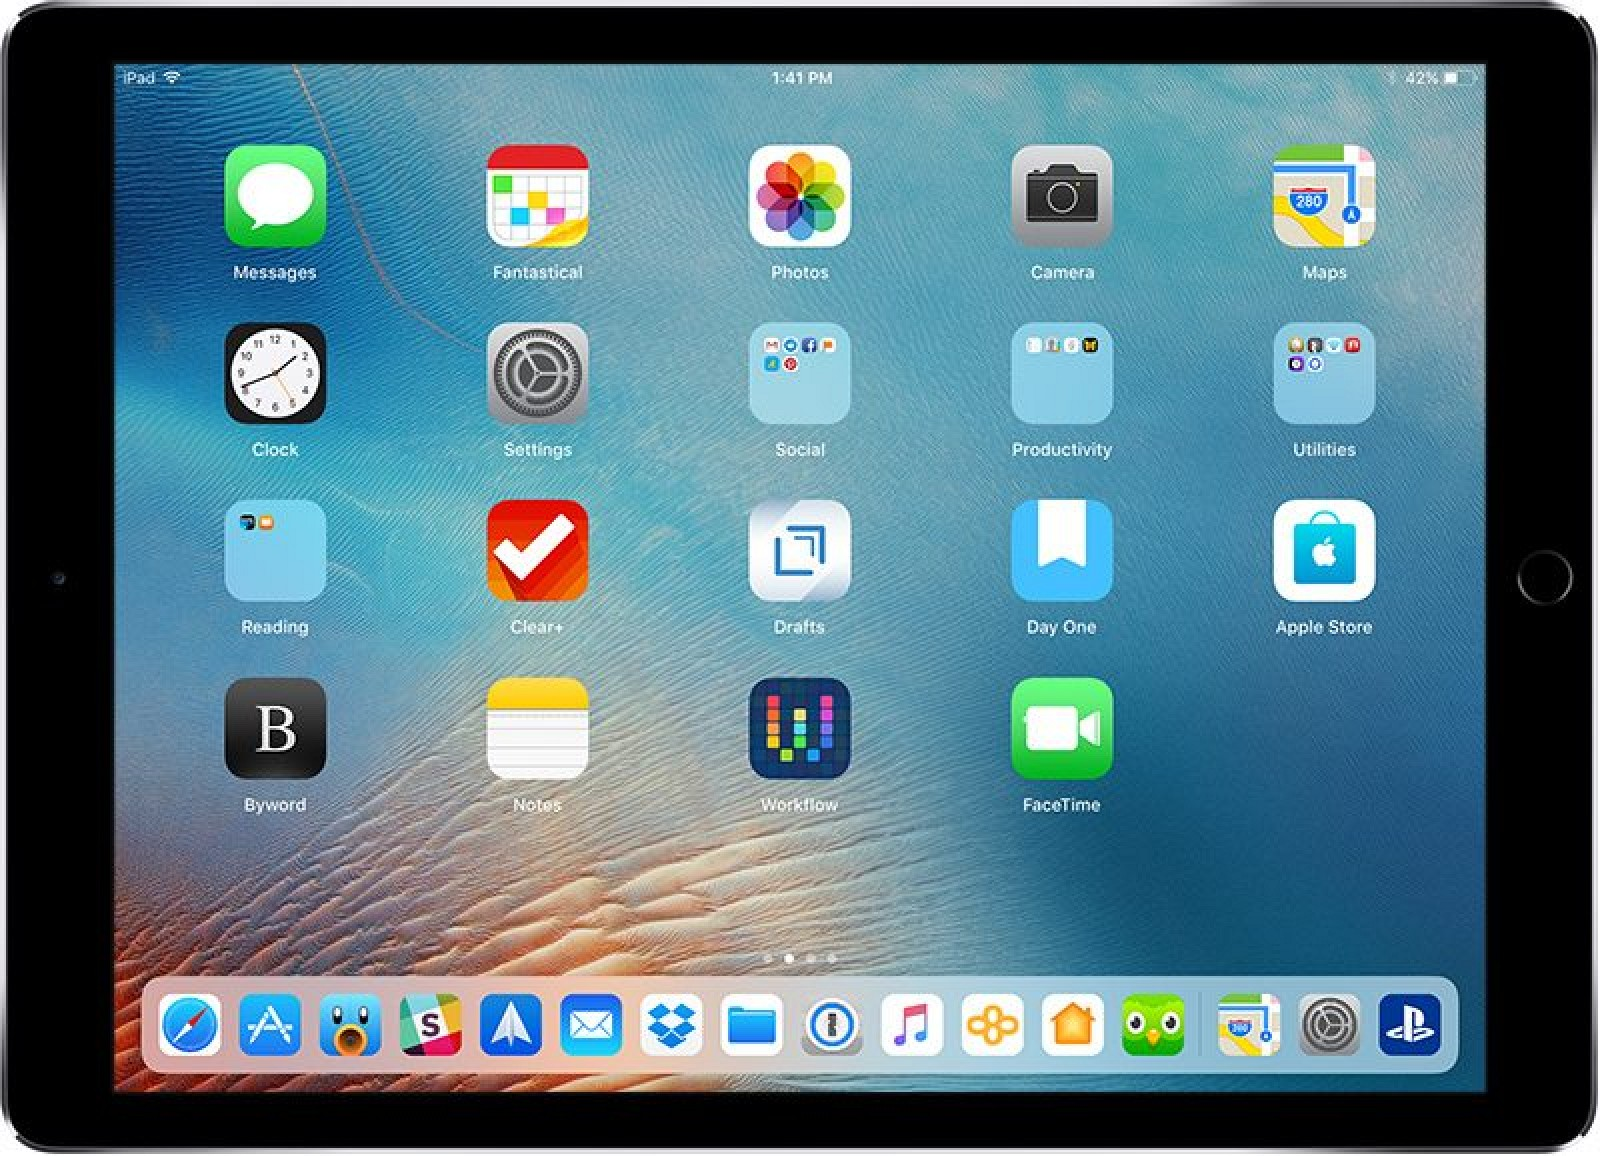 Ipad: How To Access Control Center And Home Screen In IOS 12